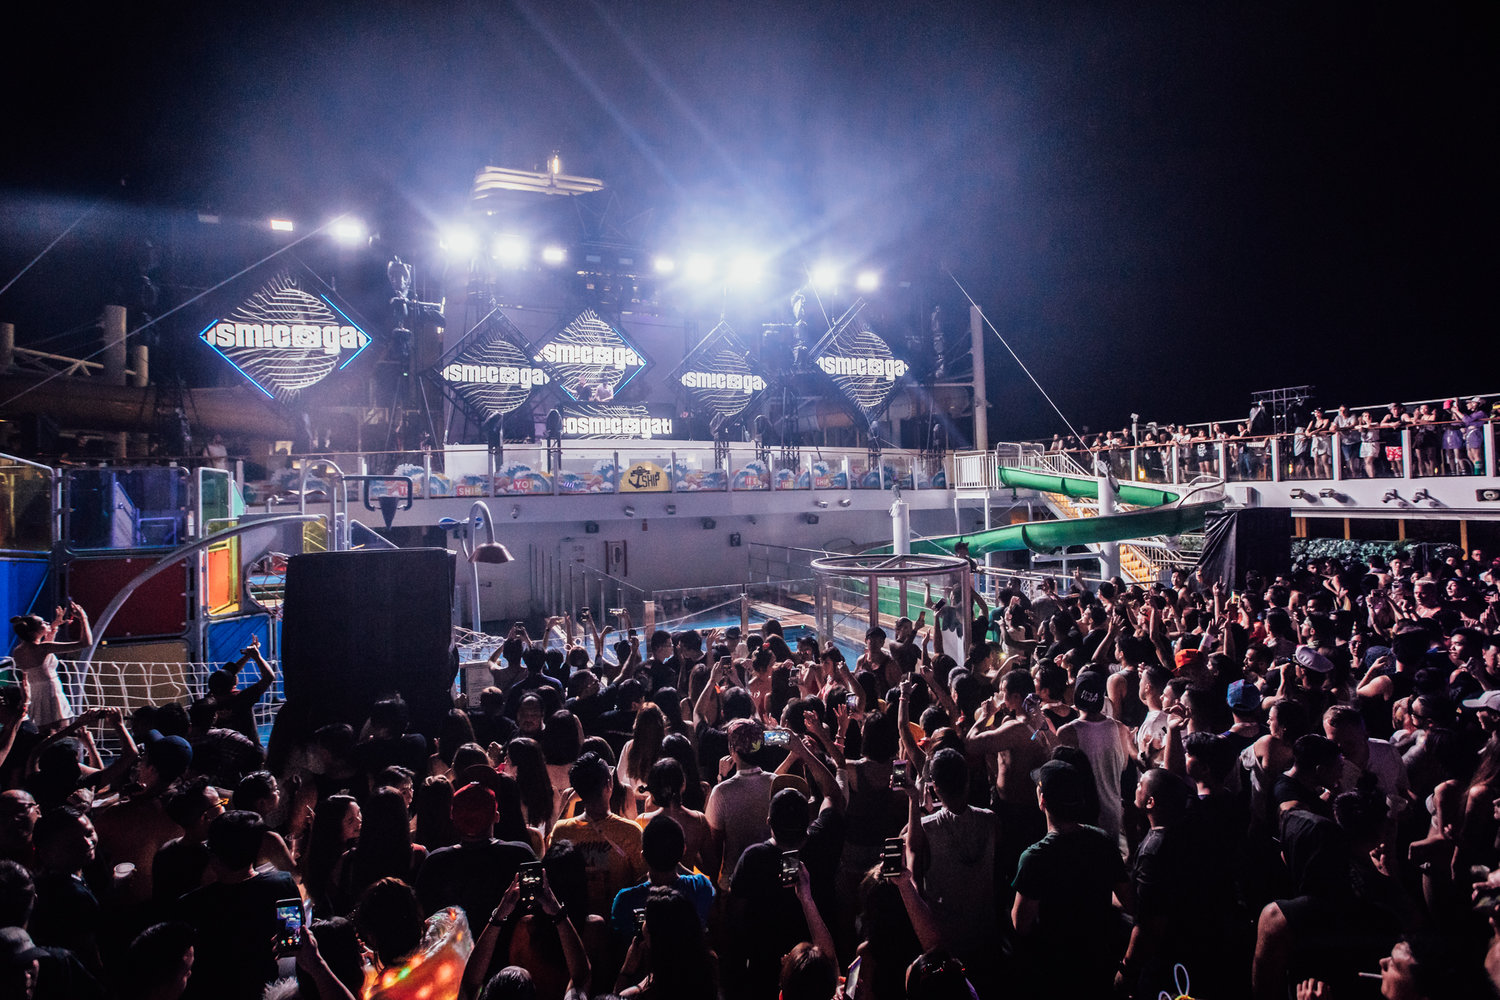 Marquee performances from EDM icons such as Cash Cash and Showtek stole the show while household trance names such as Paul Van Dyk, Cosmic Gate, and Vini Vici lit up the stage during their sets